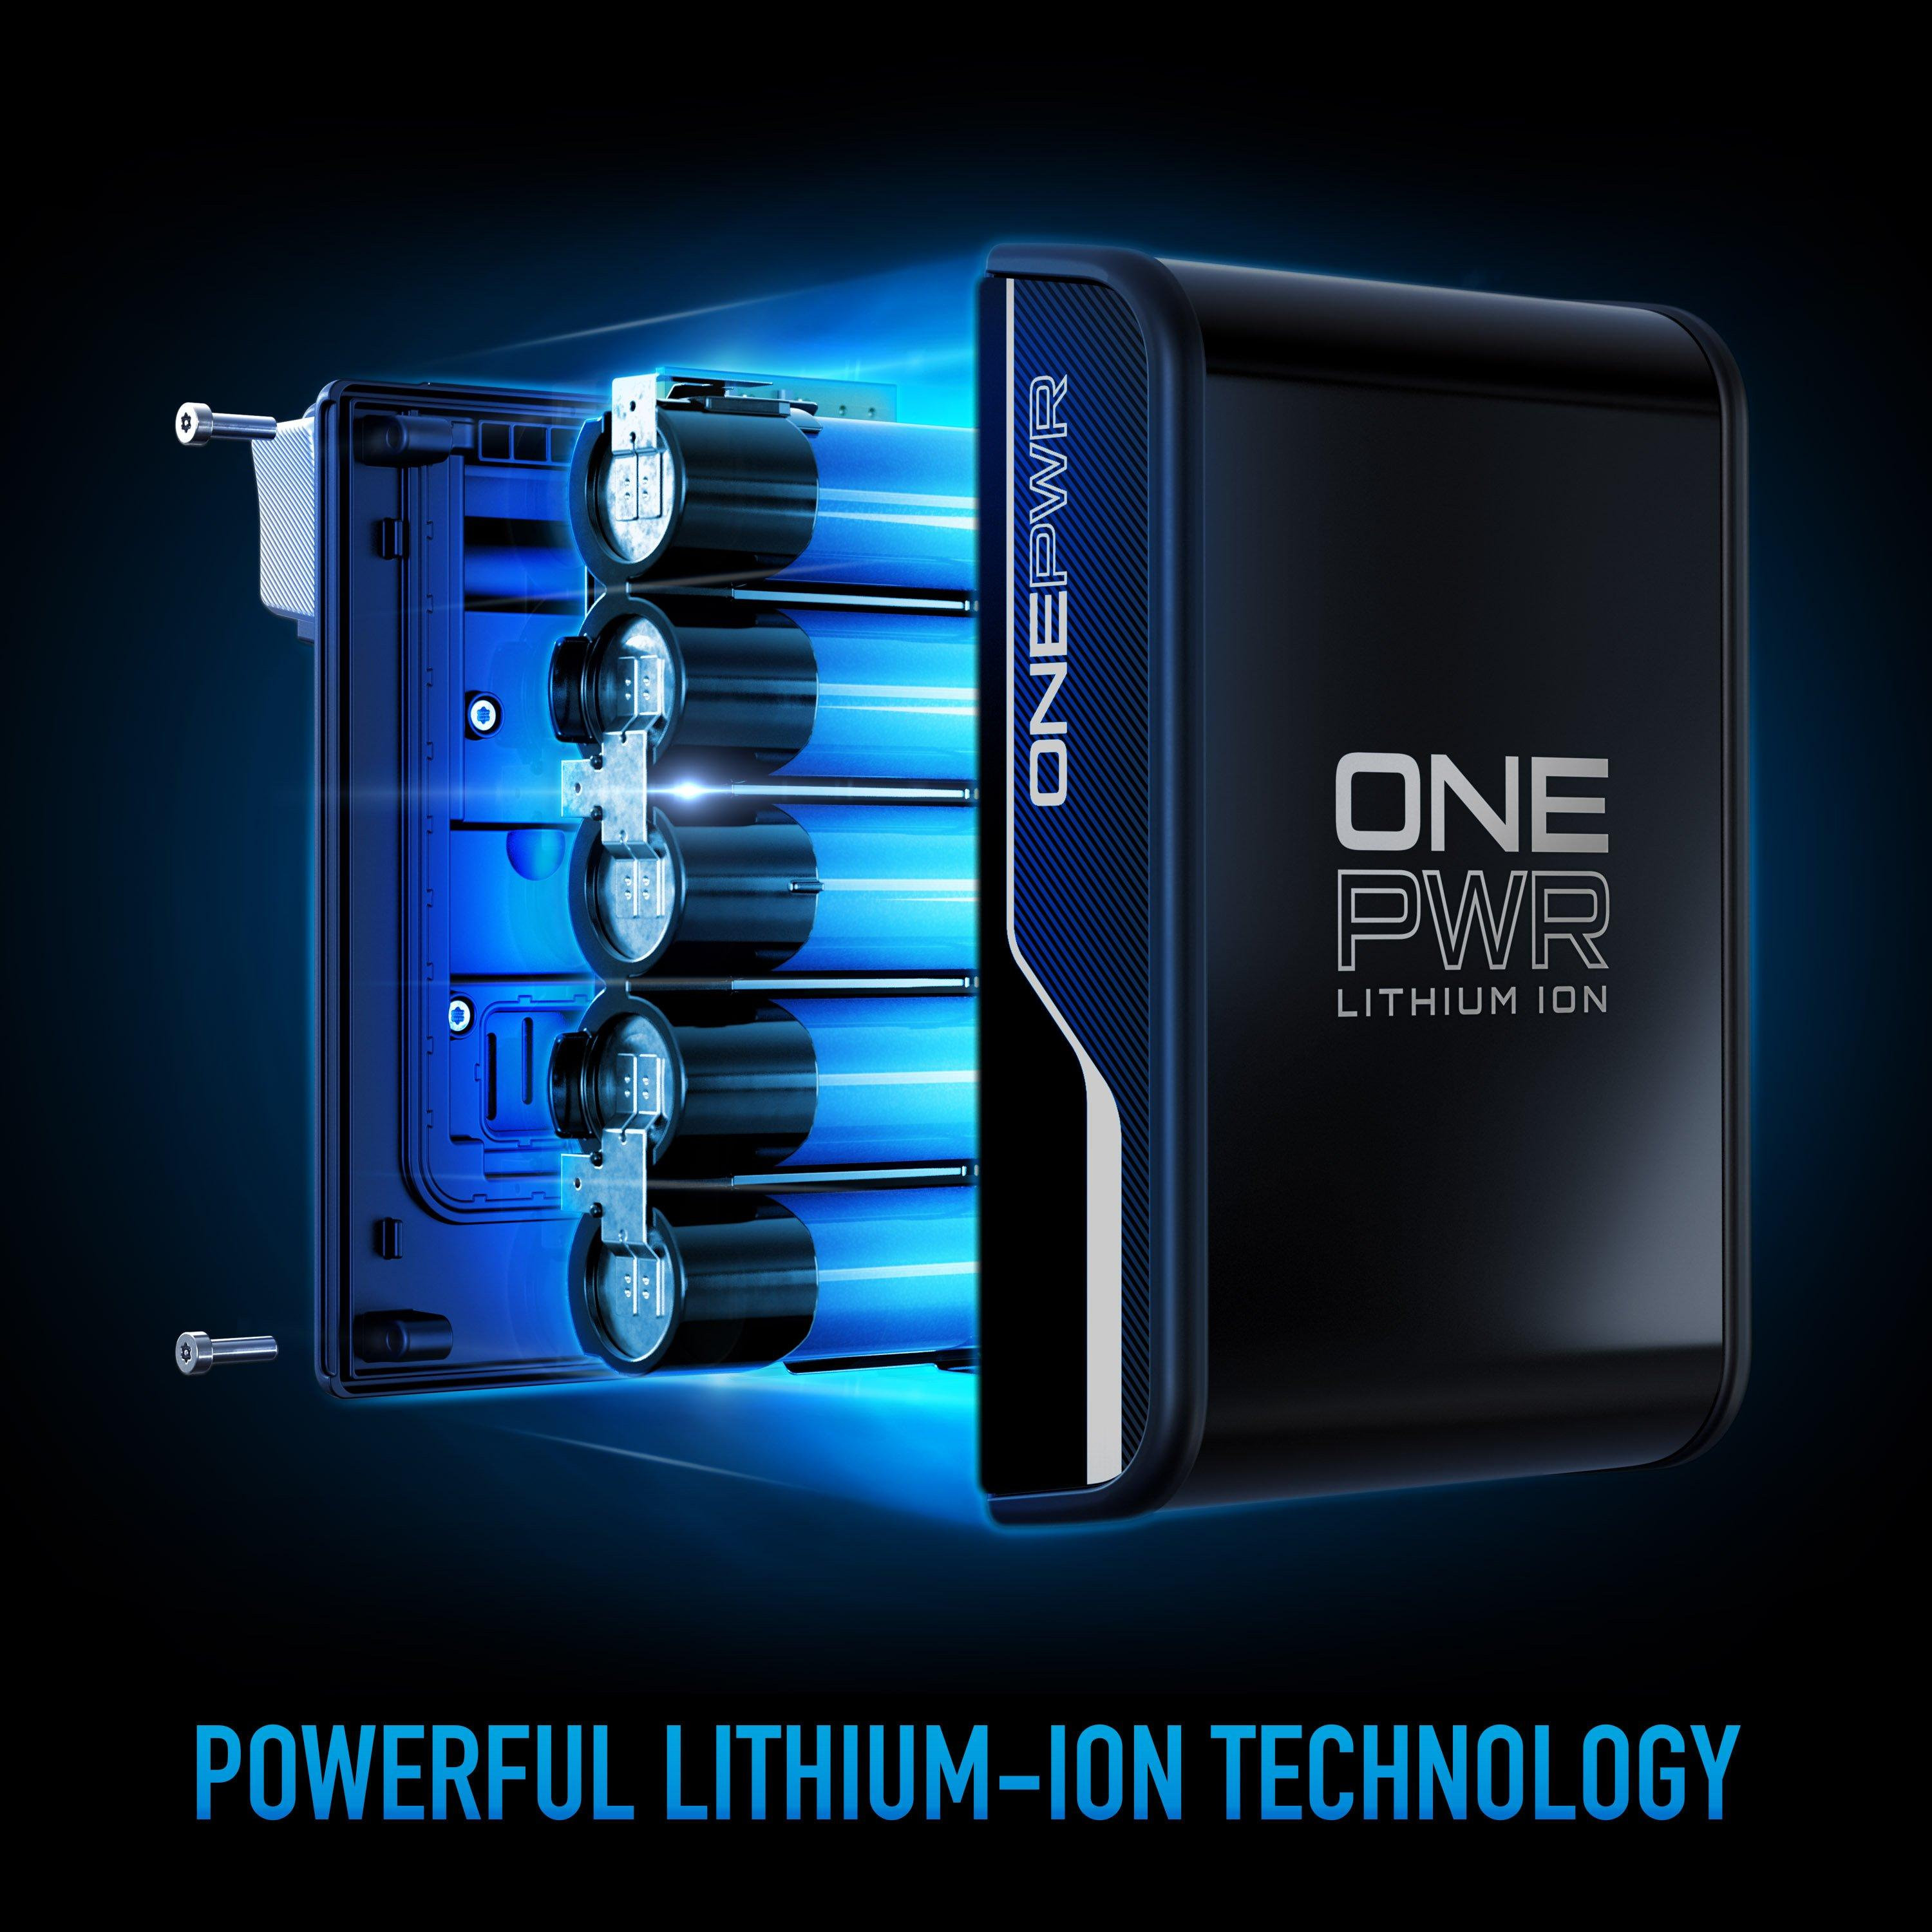 ONEPWR 3.0 Ah Lithium-Ion Battery3